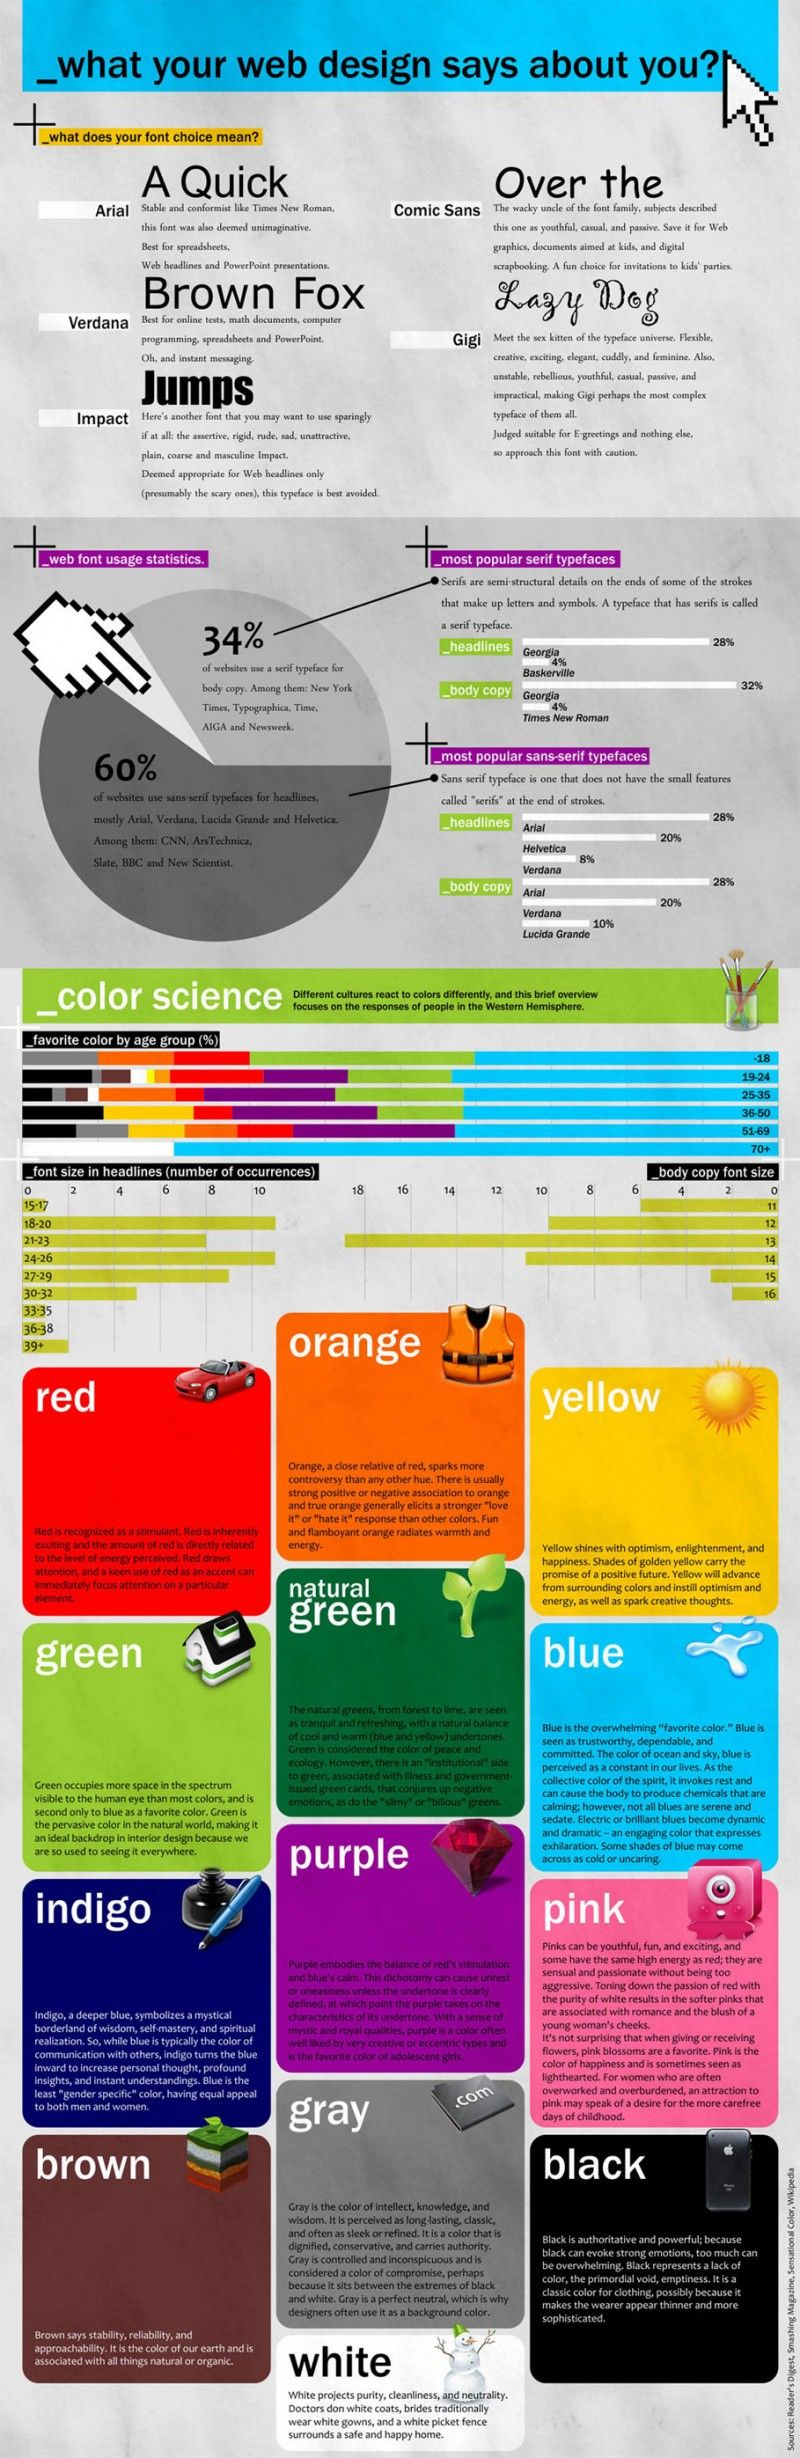 10 AWESOME INFOGRAPHICS FOR GRAPHIC DESIGNERS Web design